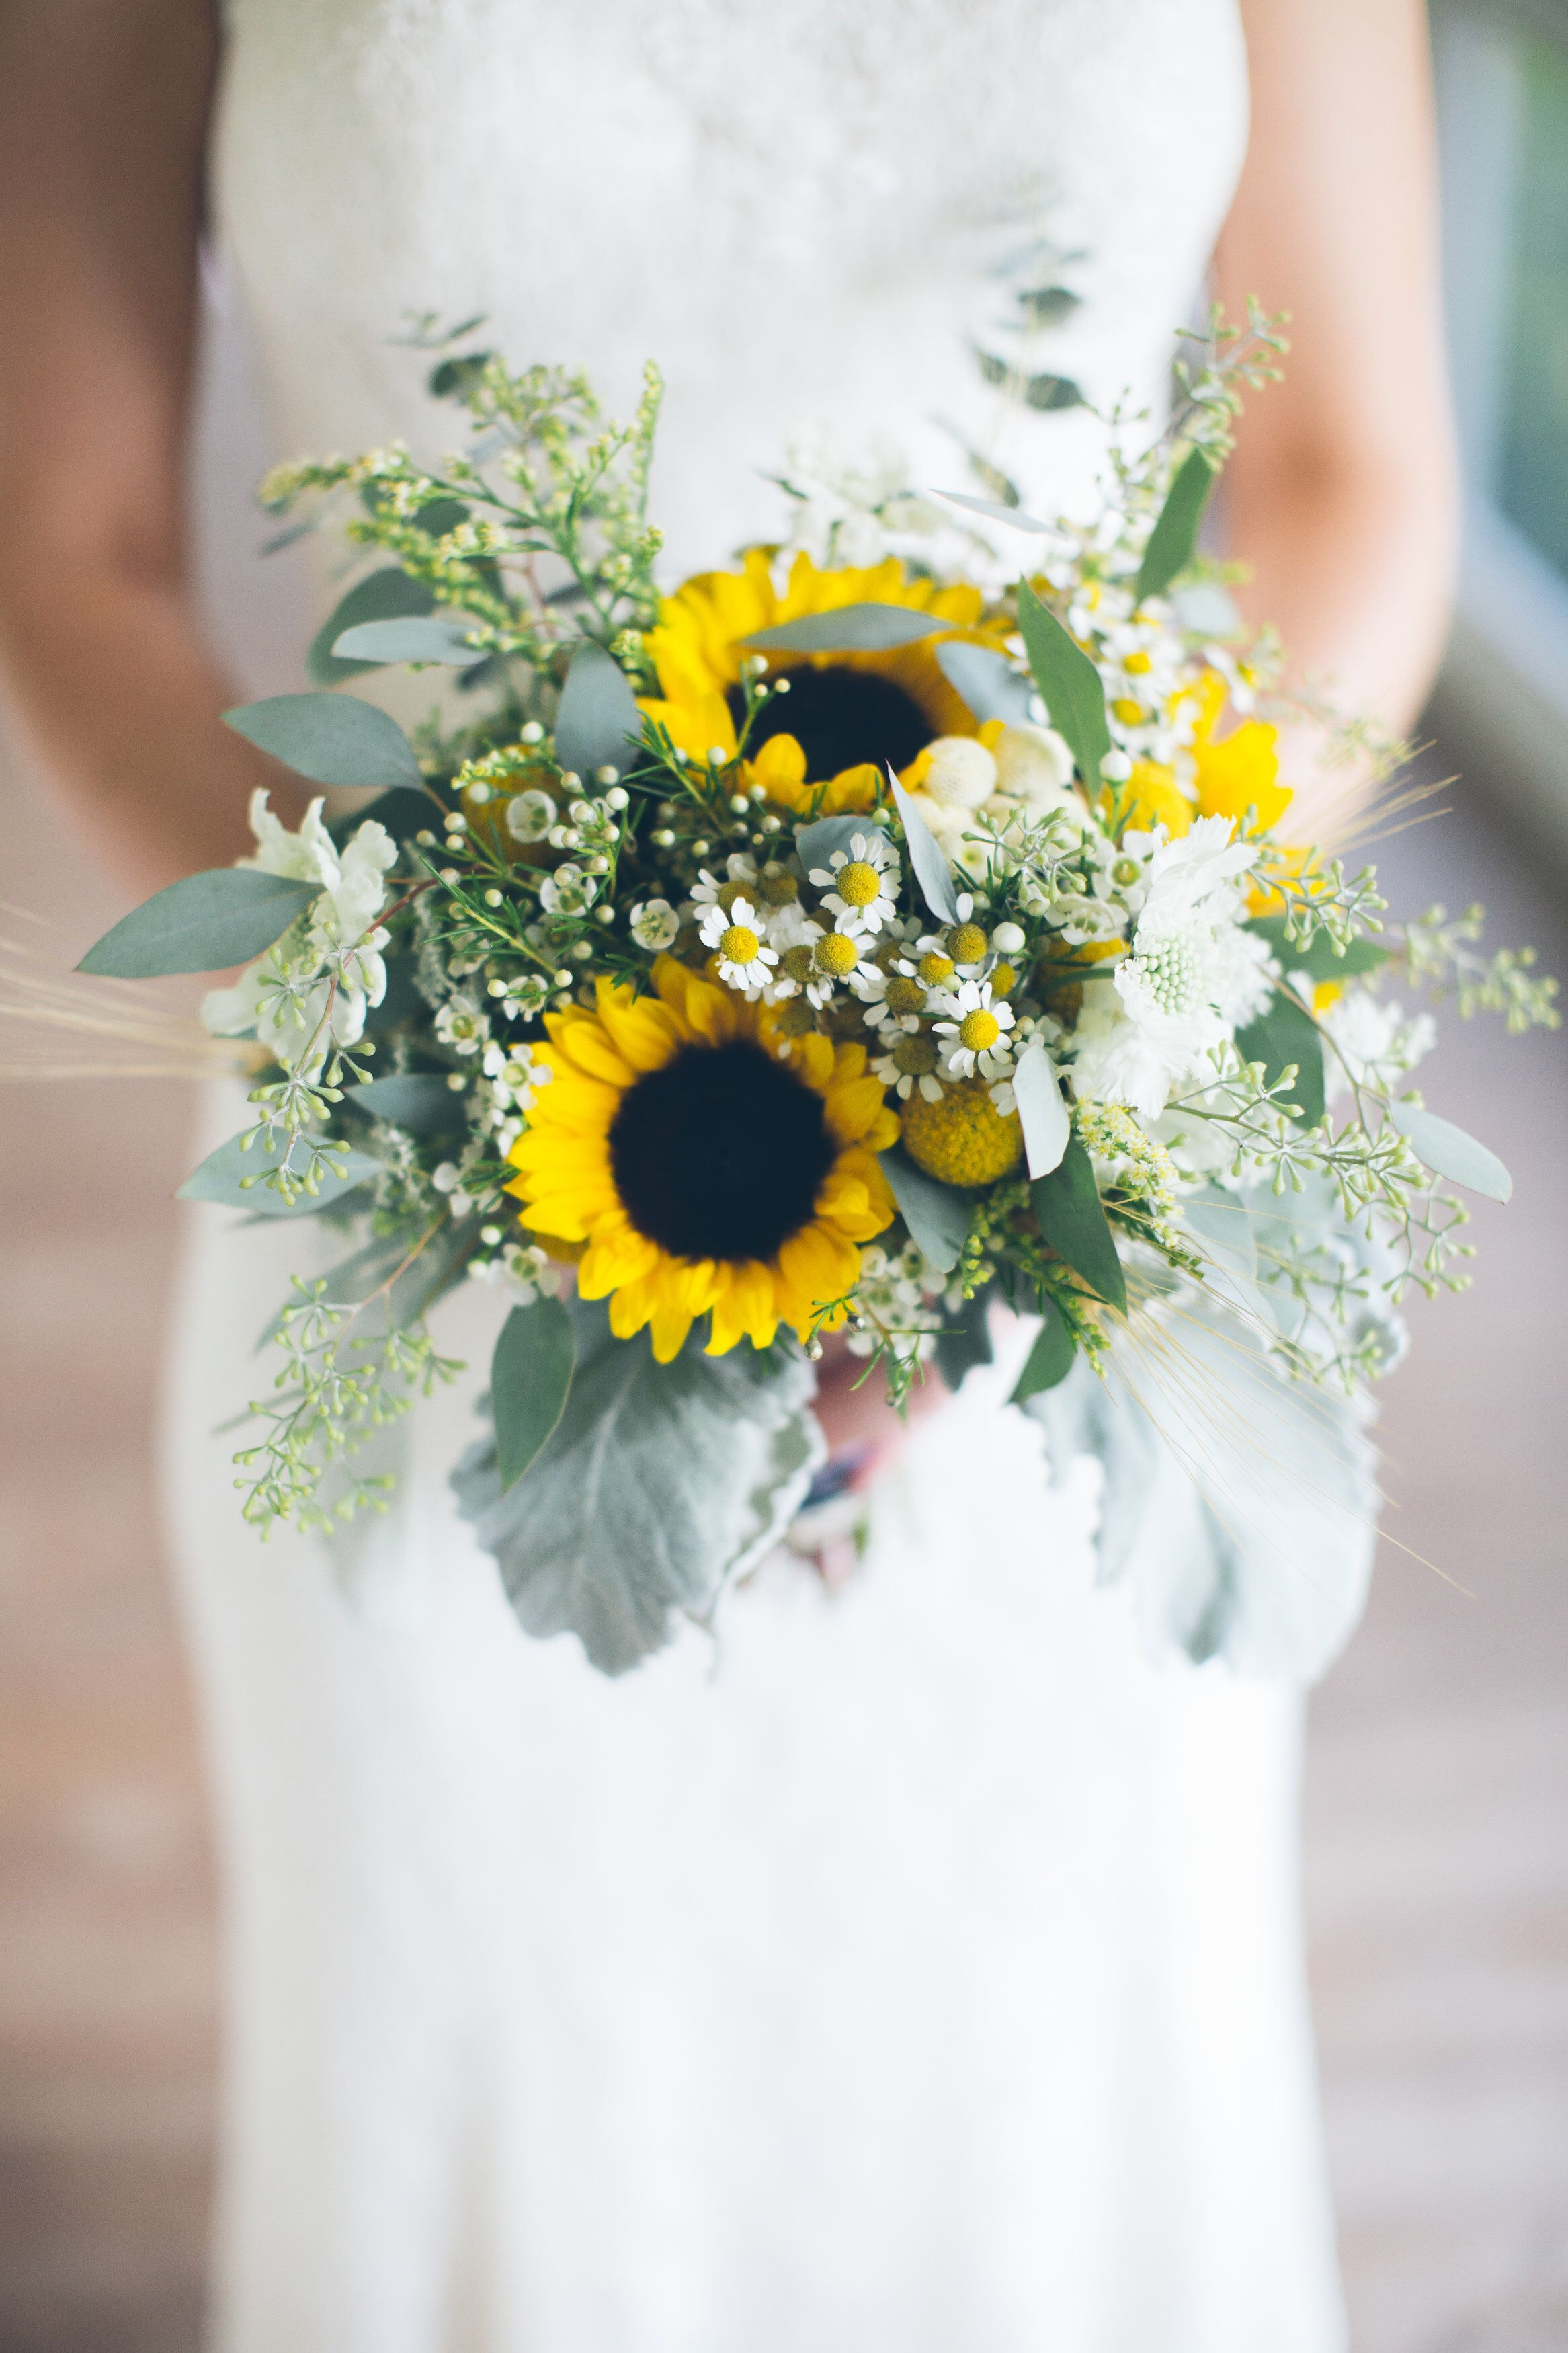 Bridal Bouquets Sunflower Wedding Sunflower And Wheat Dusty Miller Fever Few Wax Fl In 2020 Sunflower Wedding Bouquet Sunflower Bridal Bouquet Wedding Flower Guide